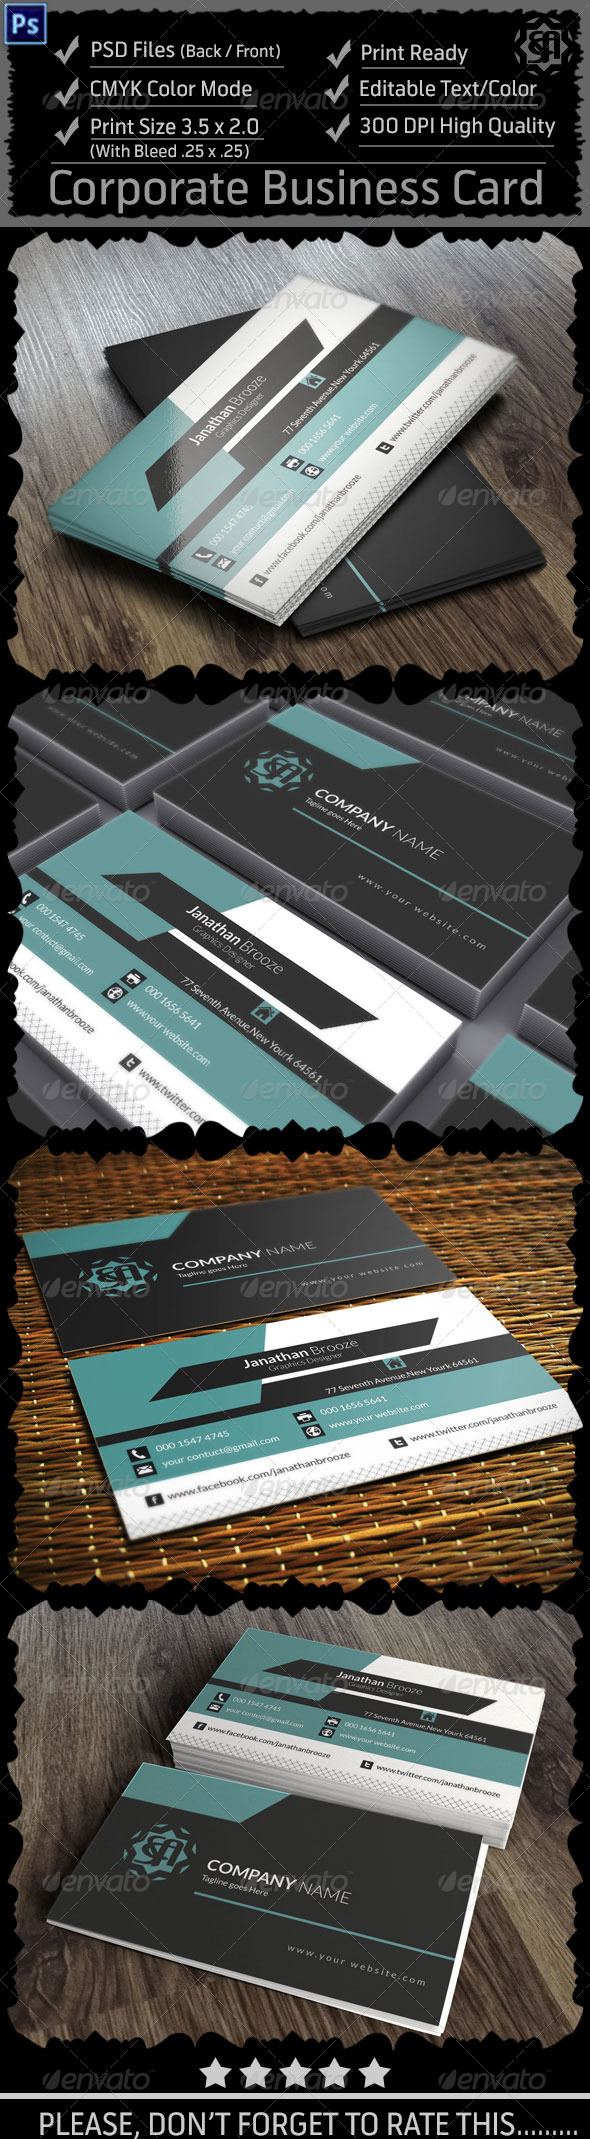 GraphicRiver Corporate Business Card Vol 9 8546374